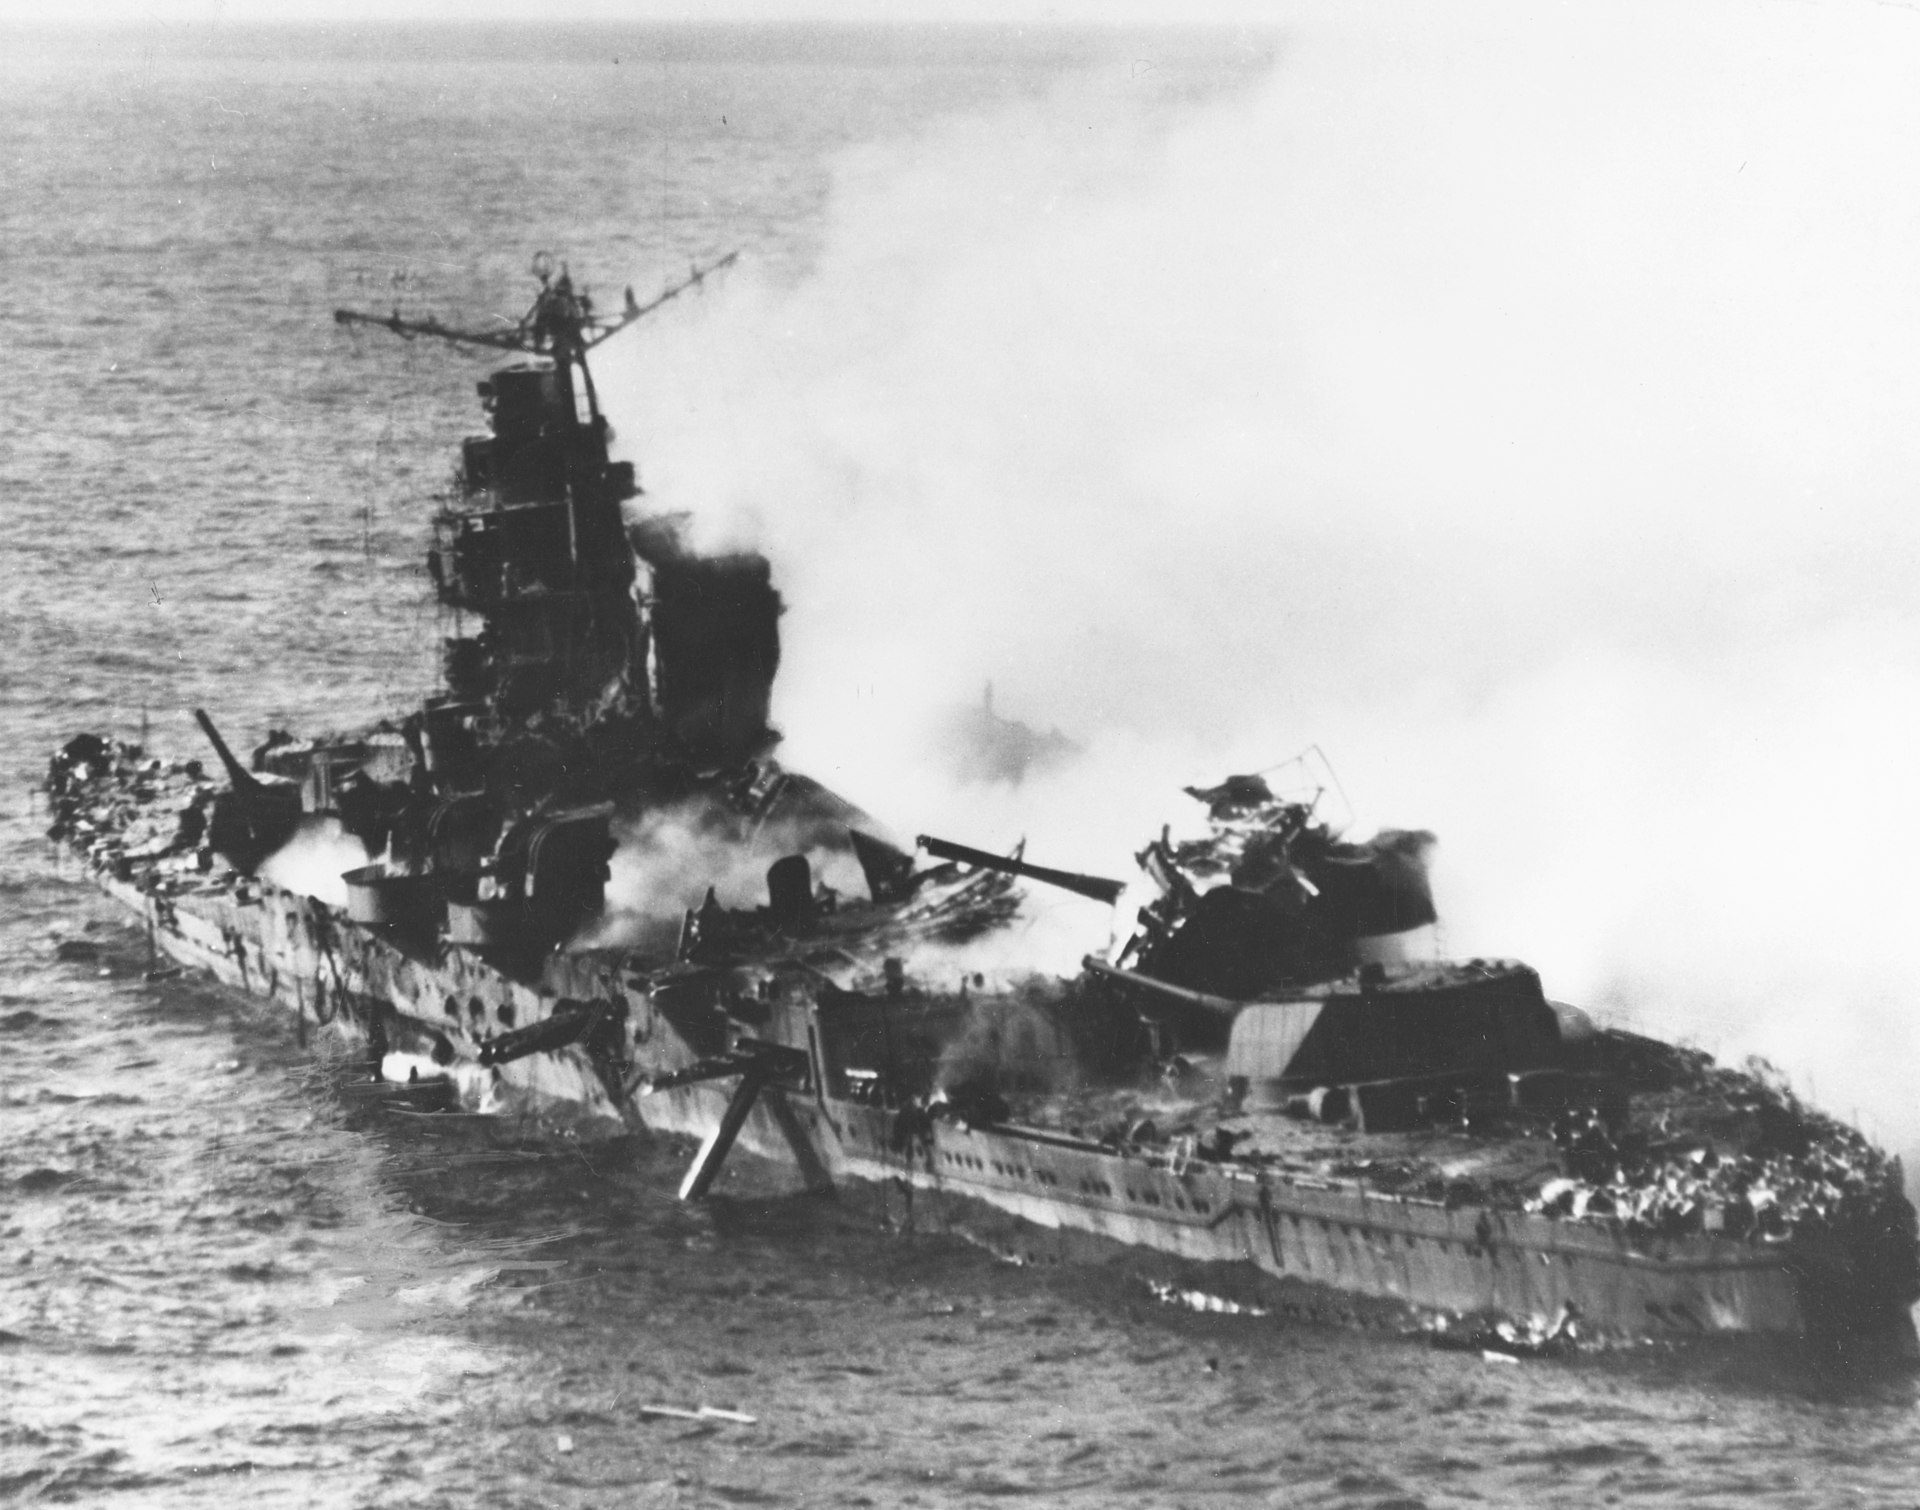 The Japanese cruiser Mikuma at the Battle of Midway.